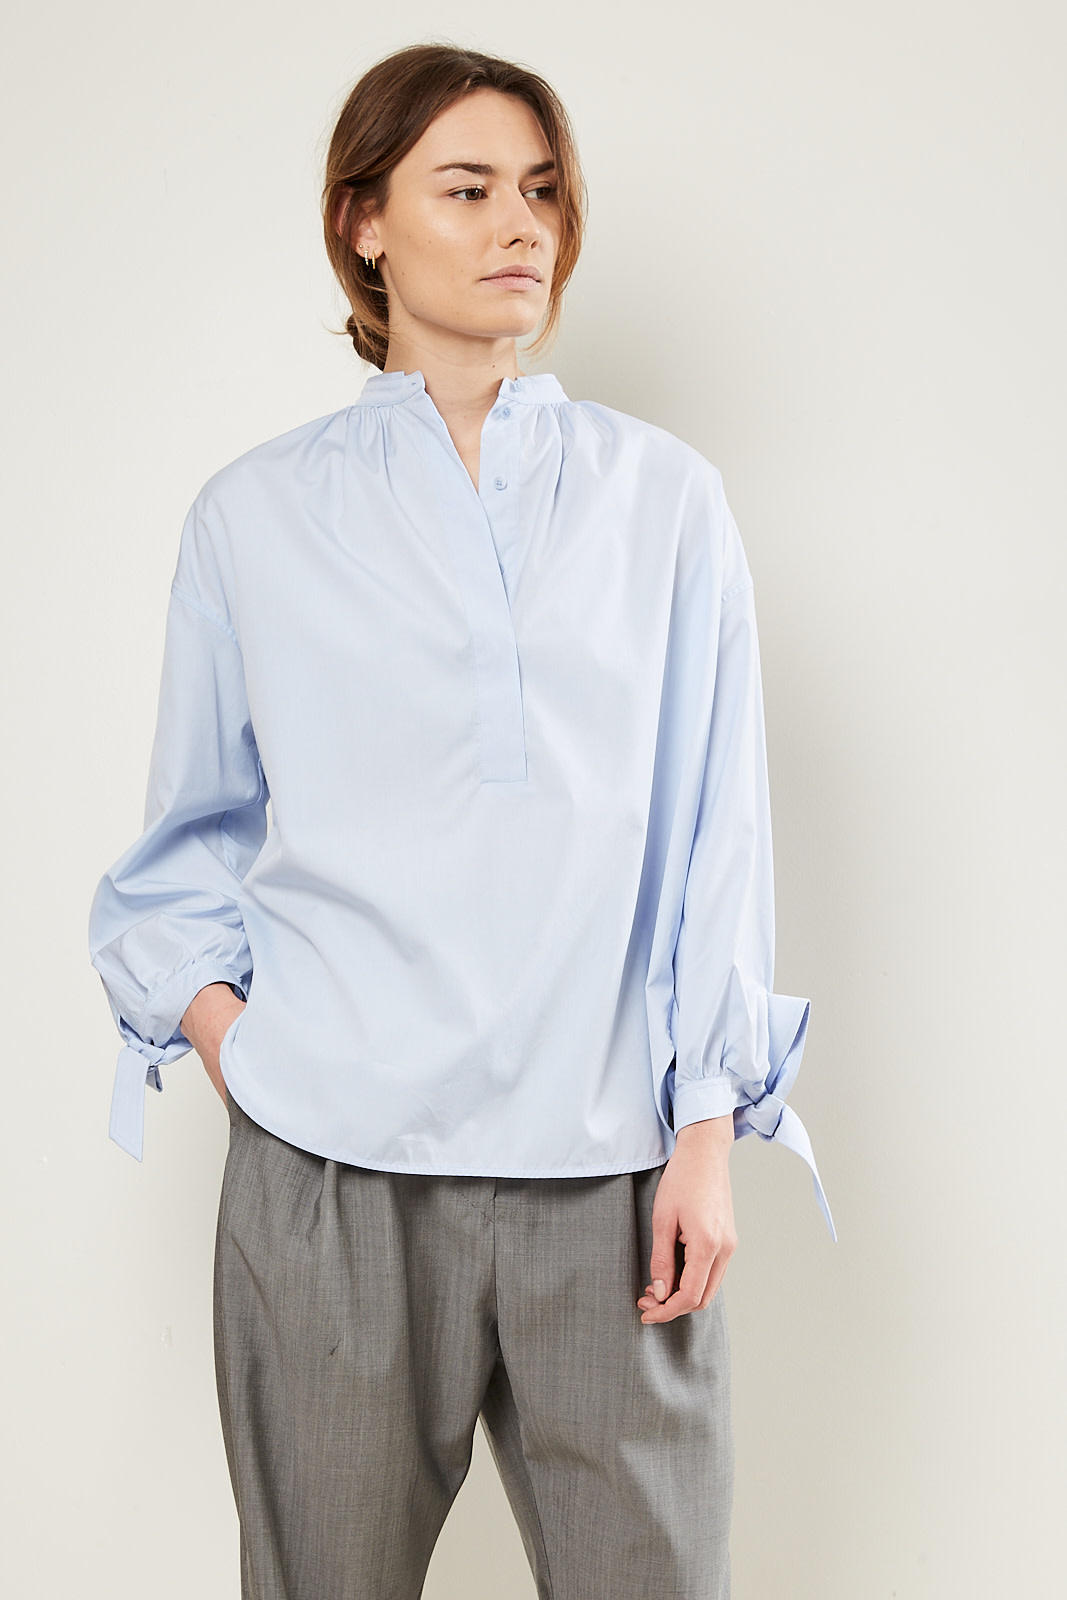 Christian Wijnants - Tanny romantic blouse